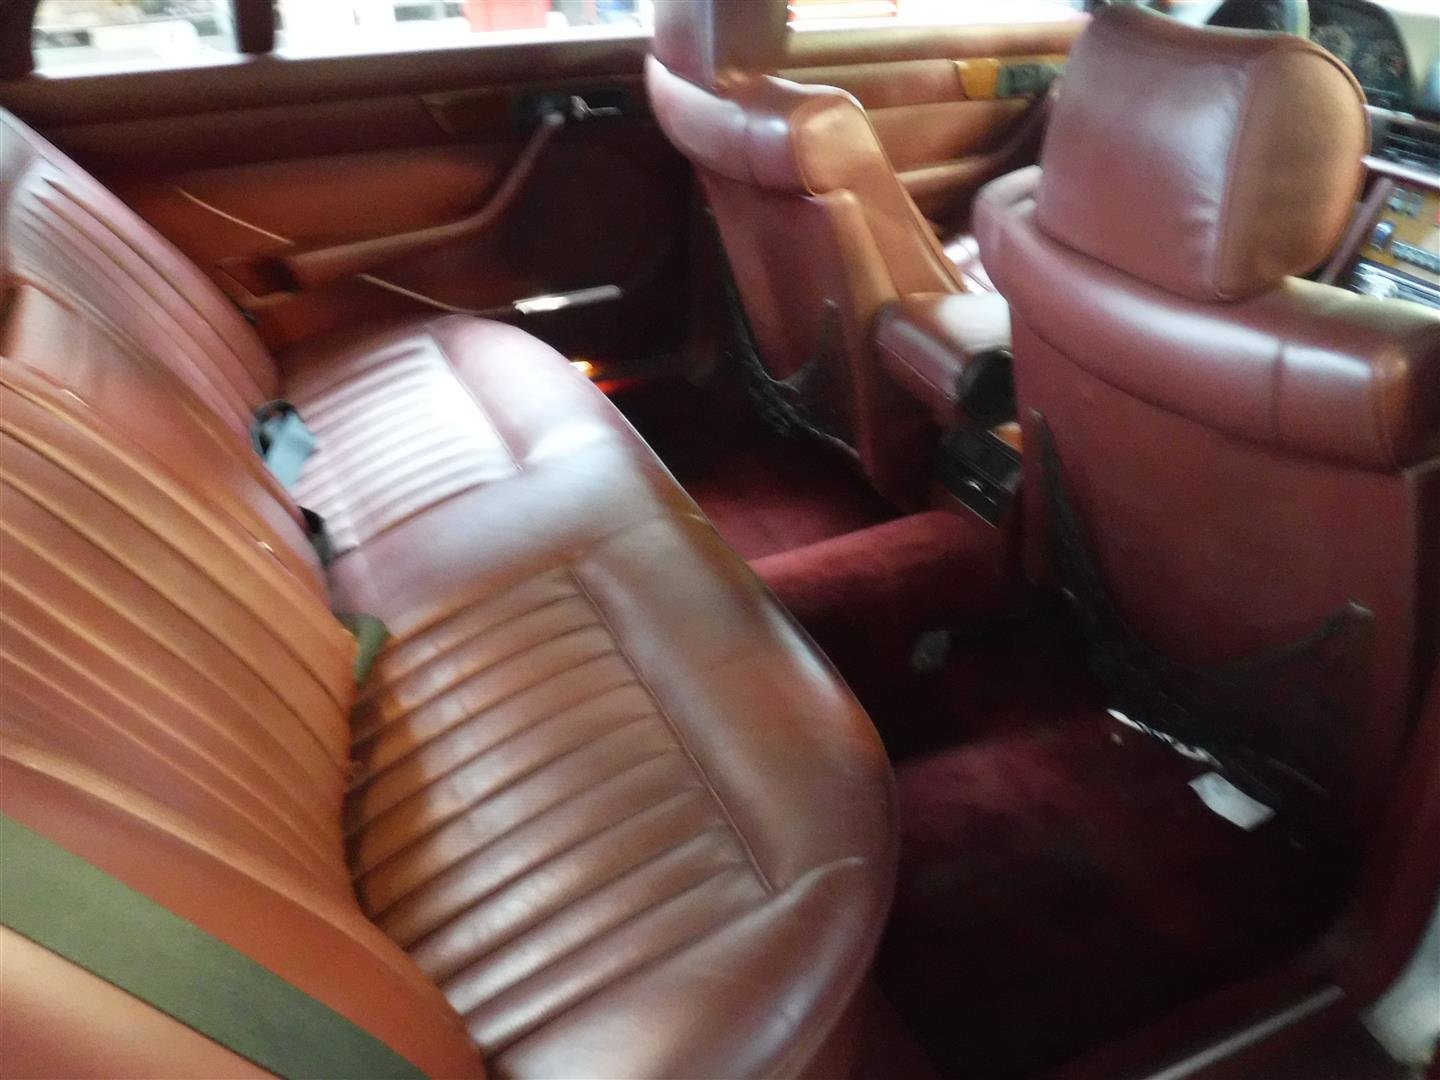 1986 Mercedes Benz 420 SEL '86 For Sale (picture 6 of 6)